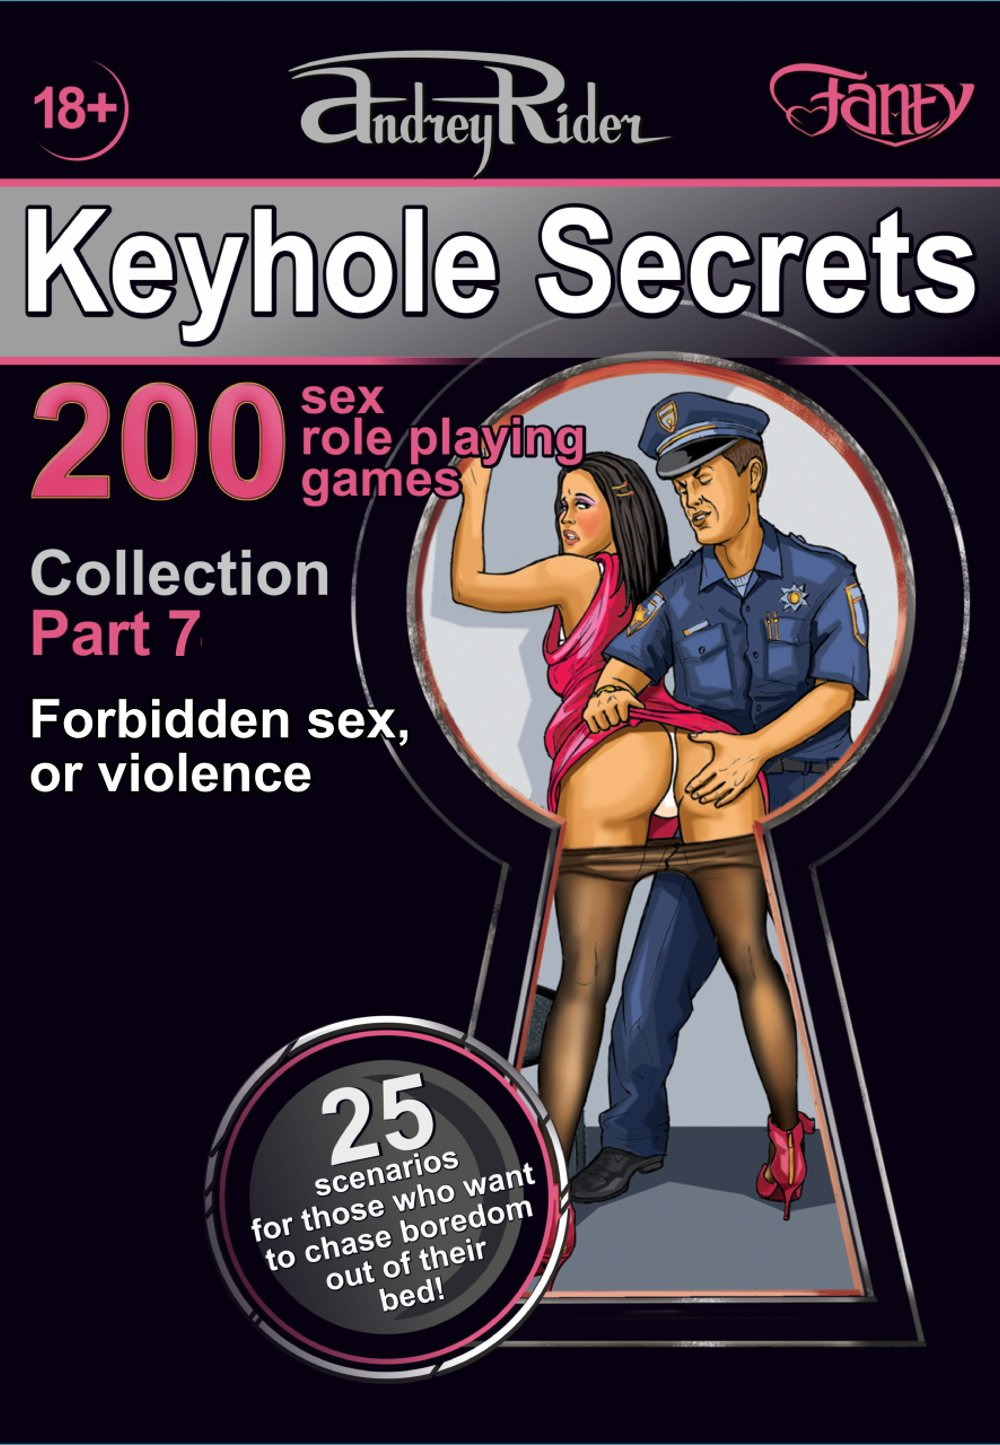 Collection of 200 Sex Role Playing Games. Part 7 (scenarios 151-175)